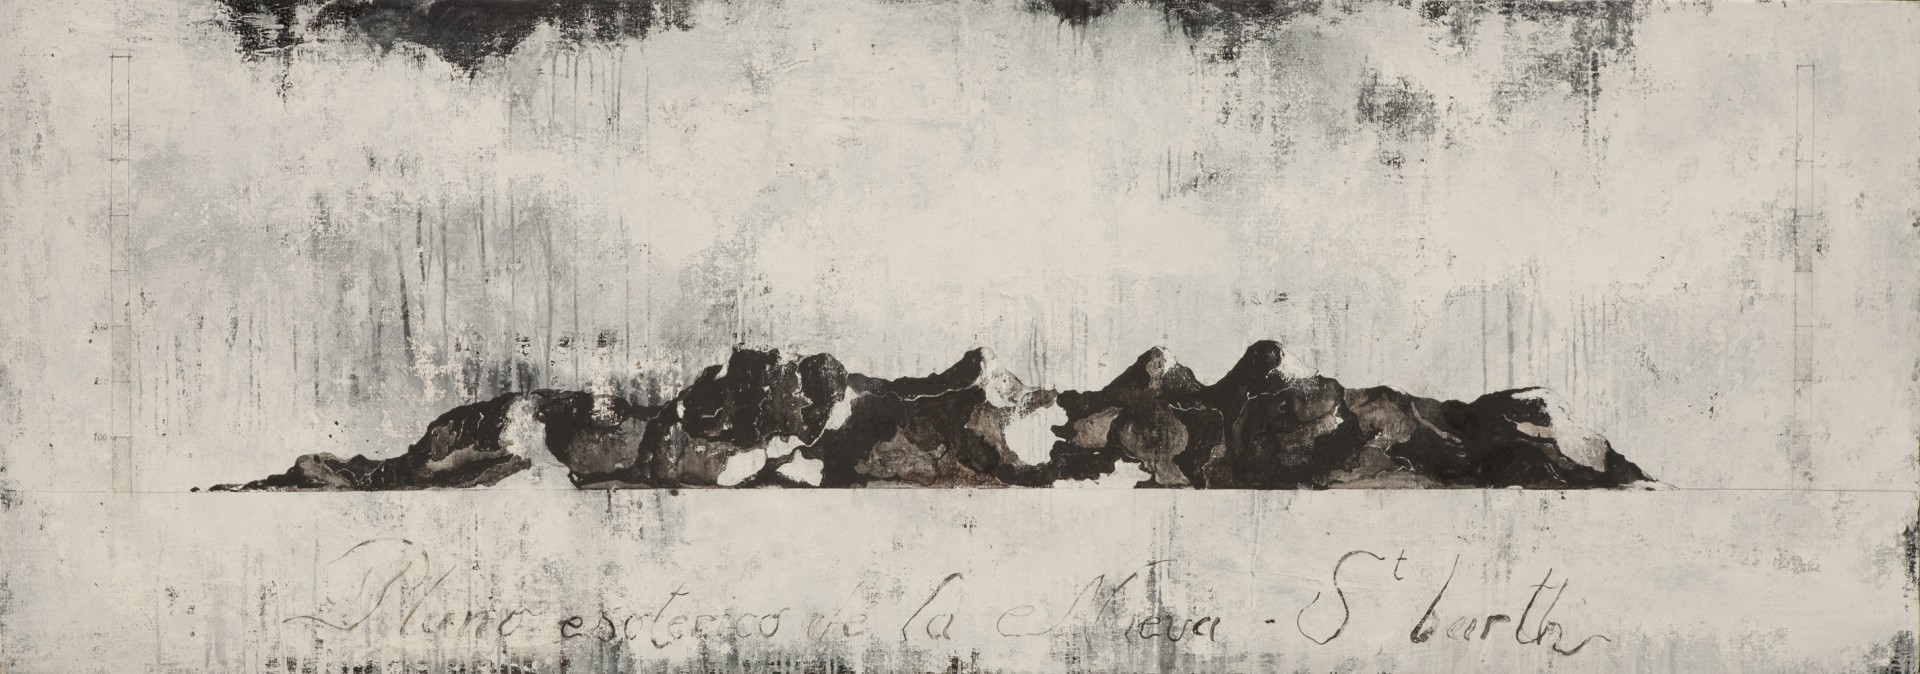 El plano esoterico de la nueva St. Barth, 2010 87 x 245 cm / 34.3 x 96.5 inches Pigments & Japanese ink / Canvas